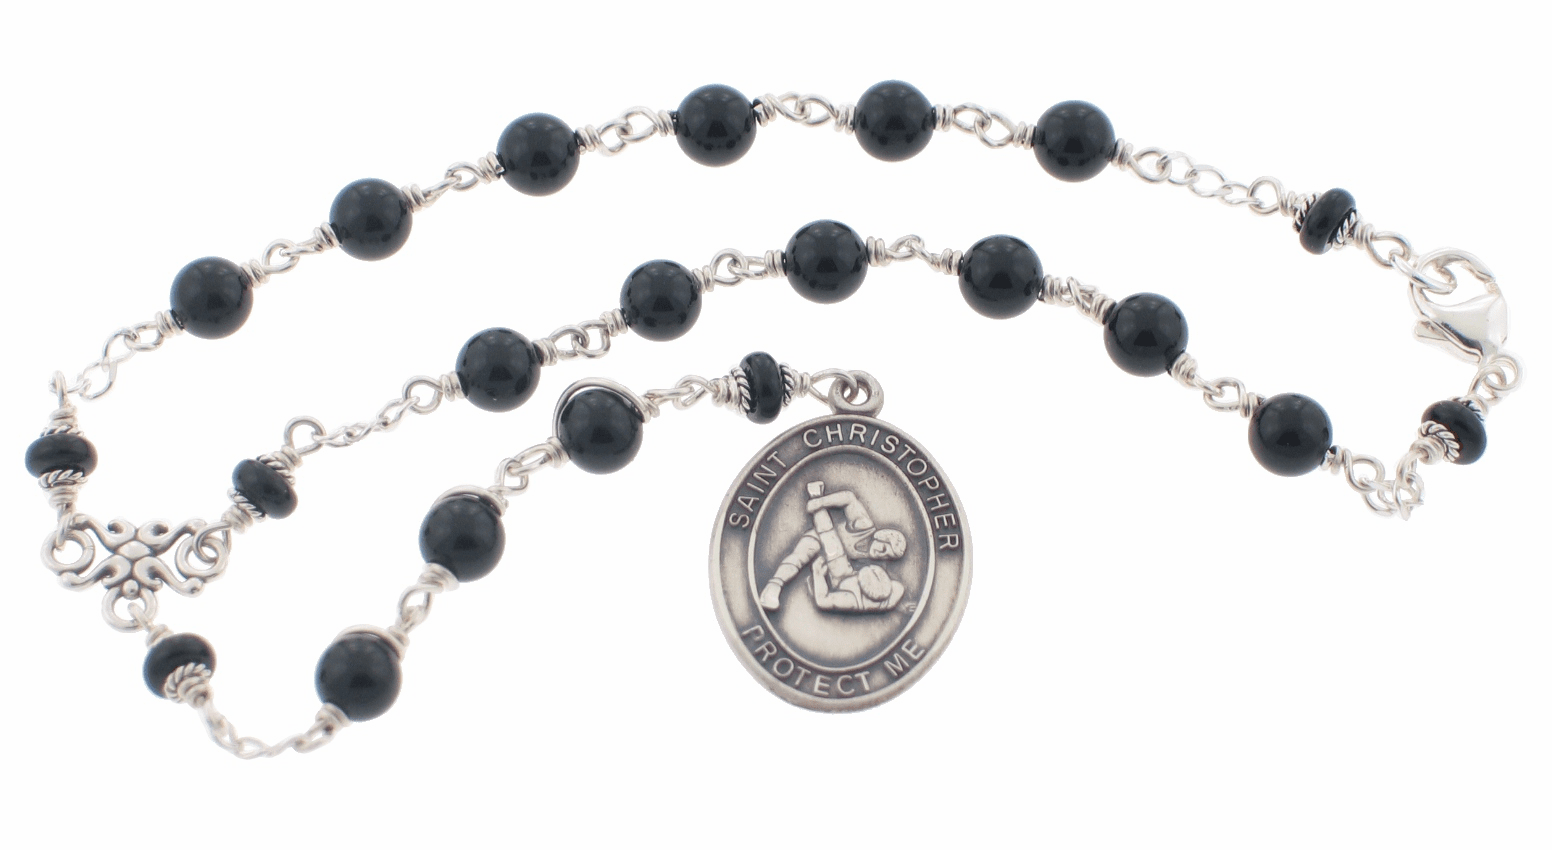 How to pray the St Christopher Auto Chaplet